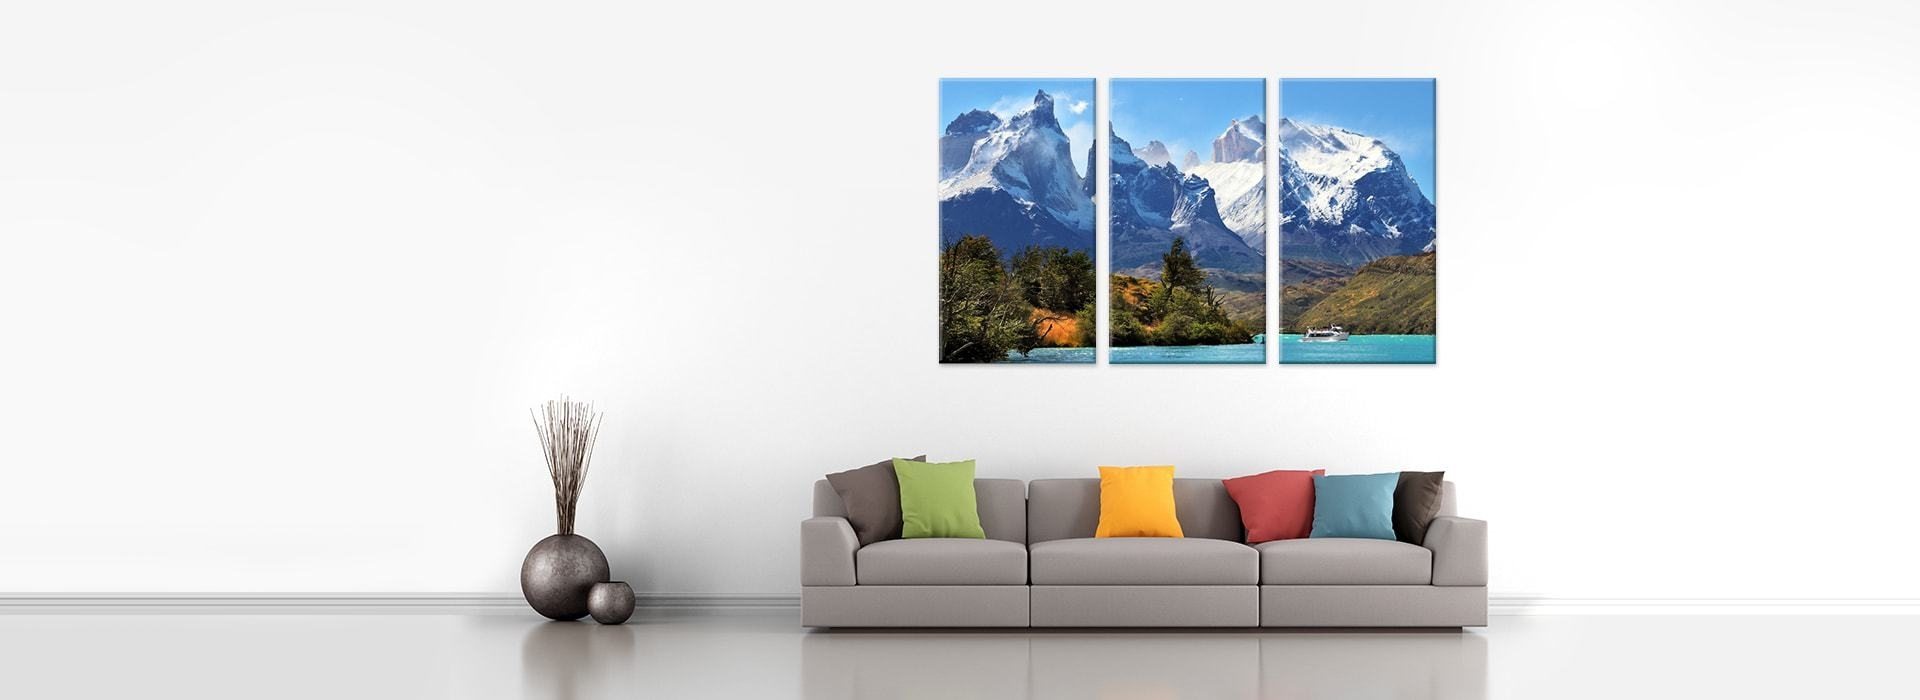 Canvas Prints | Canvas Factory Within Most Up To Date New Zealand Canvas Wall Art (View 11 of 15)